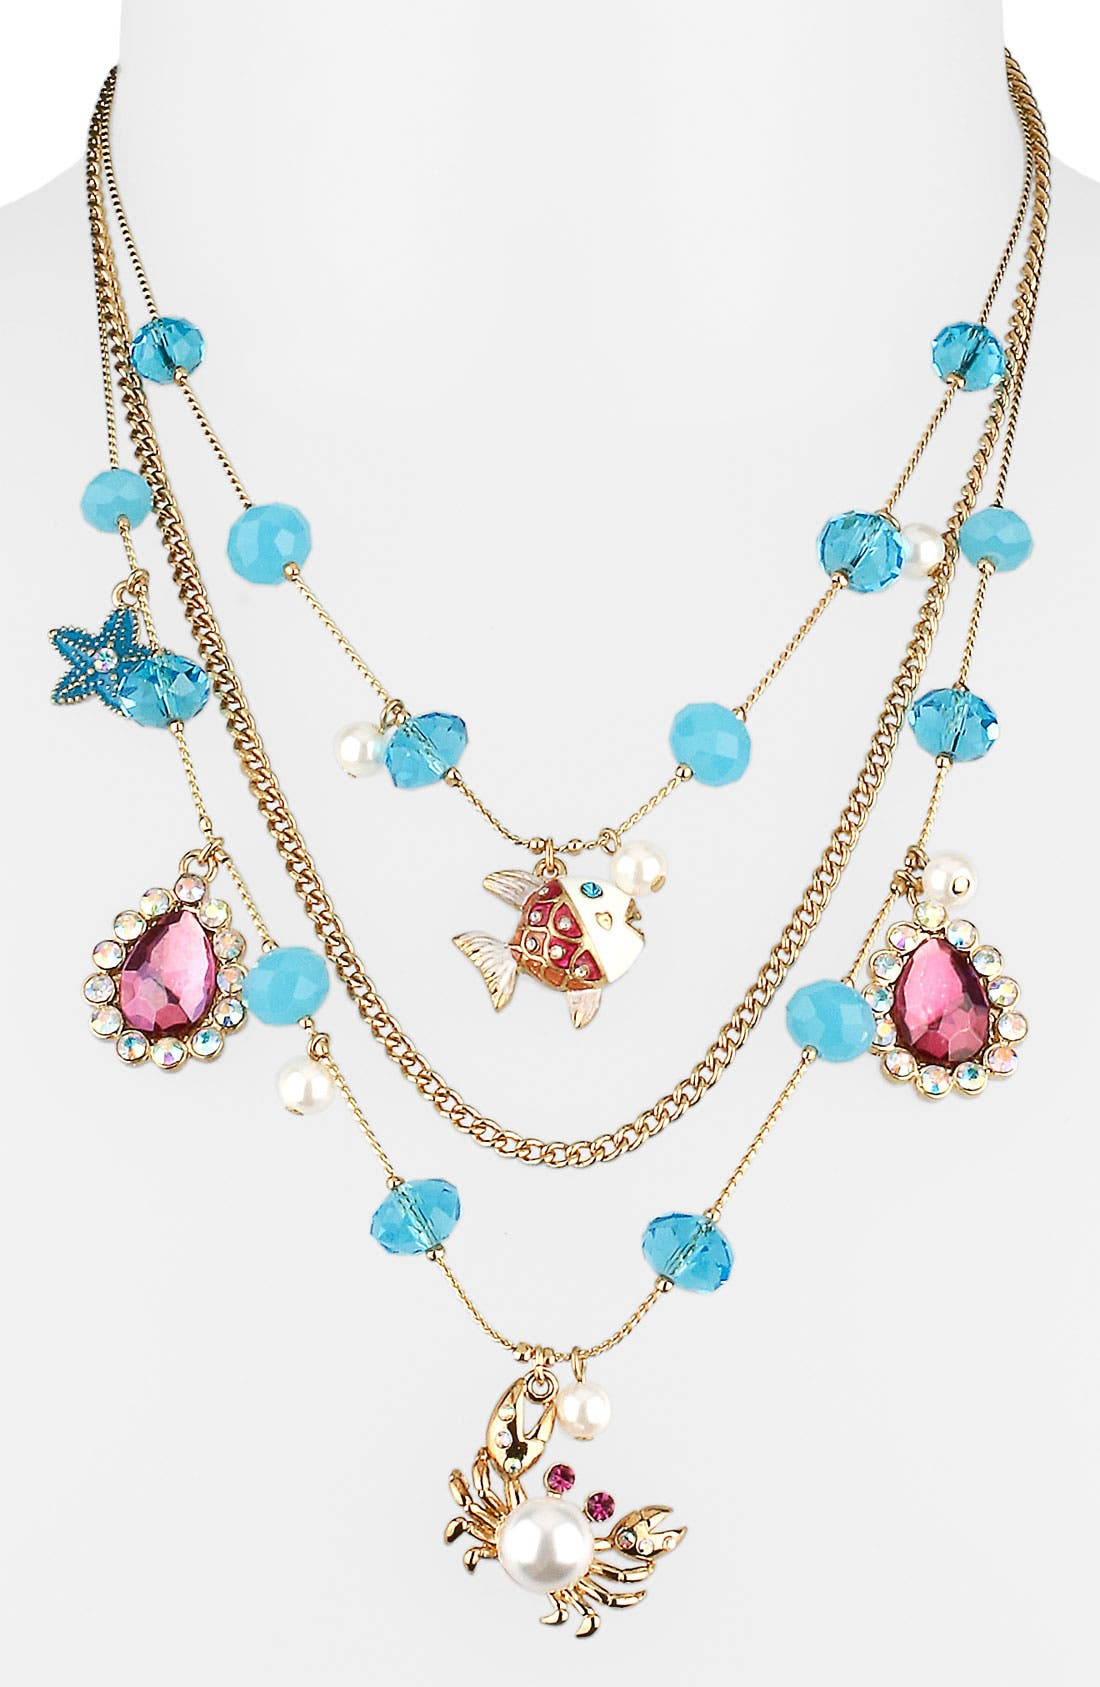 Alternate Image 1 Selected - Betsey Johnson 'Sea Excursion' Triple Strand Illusion Necklace